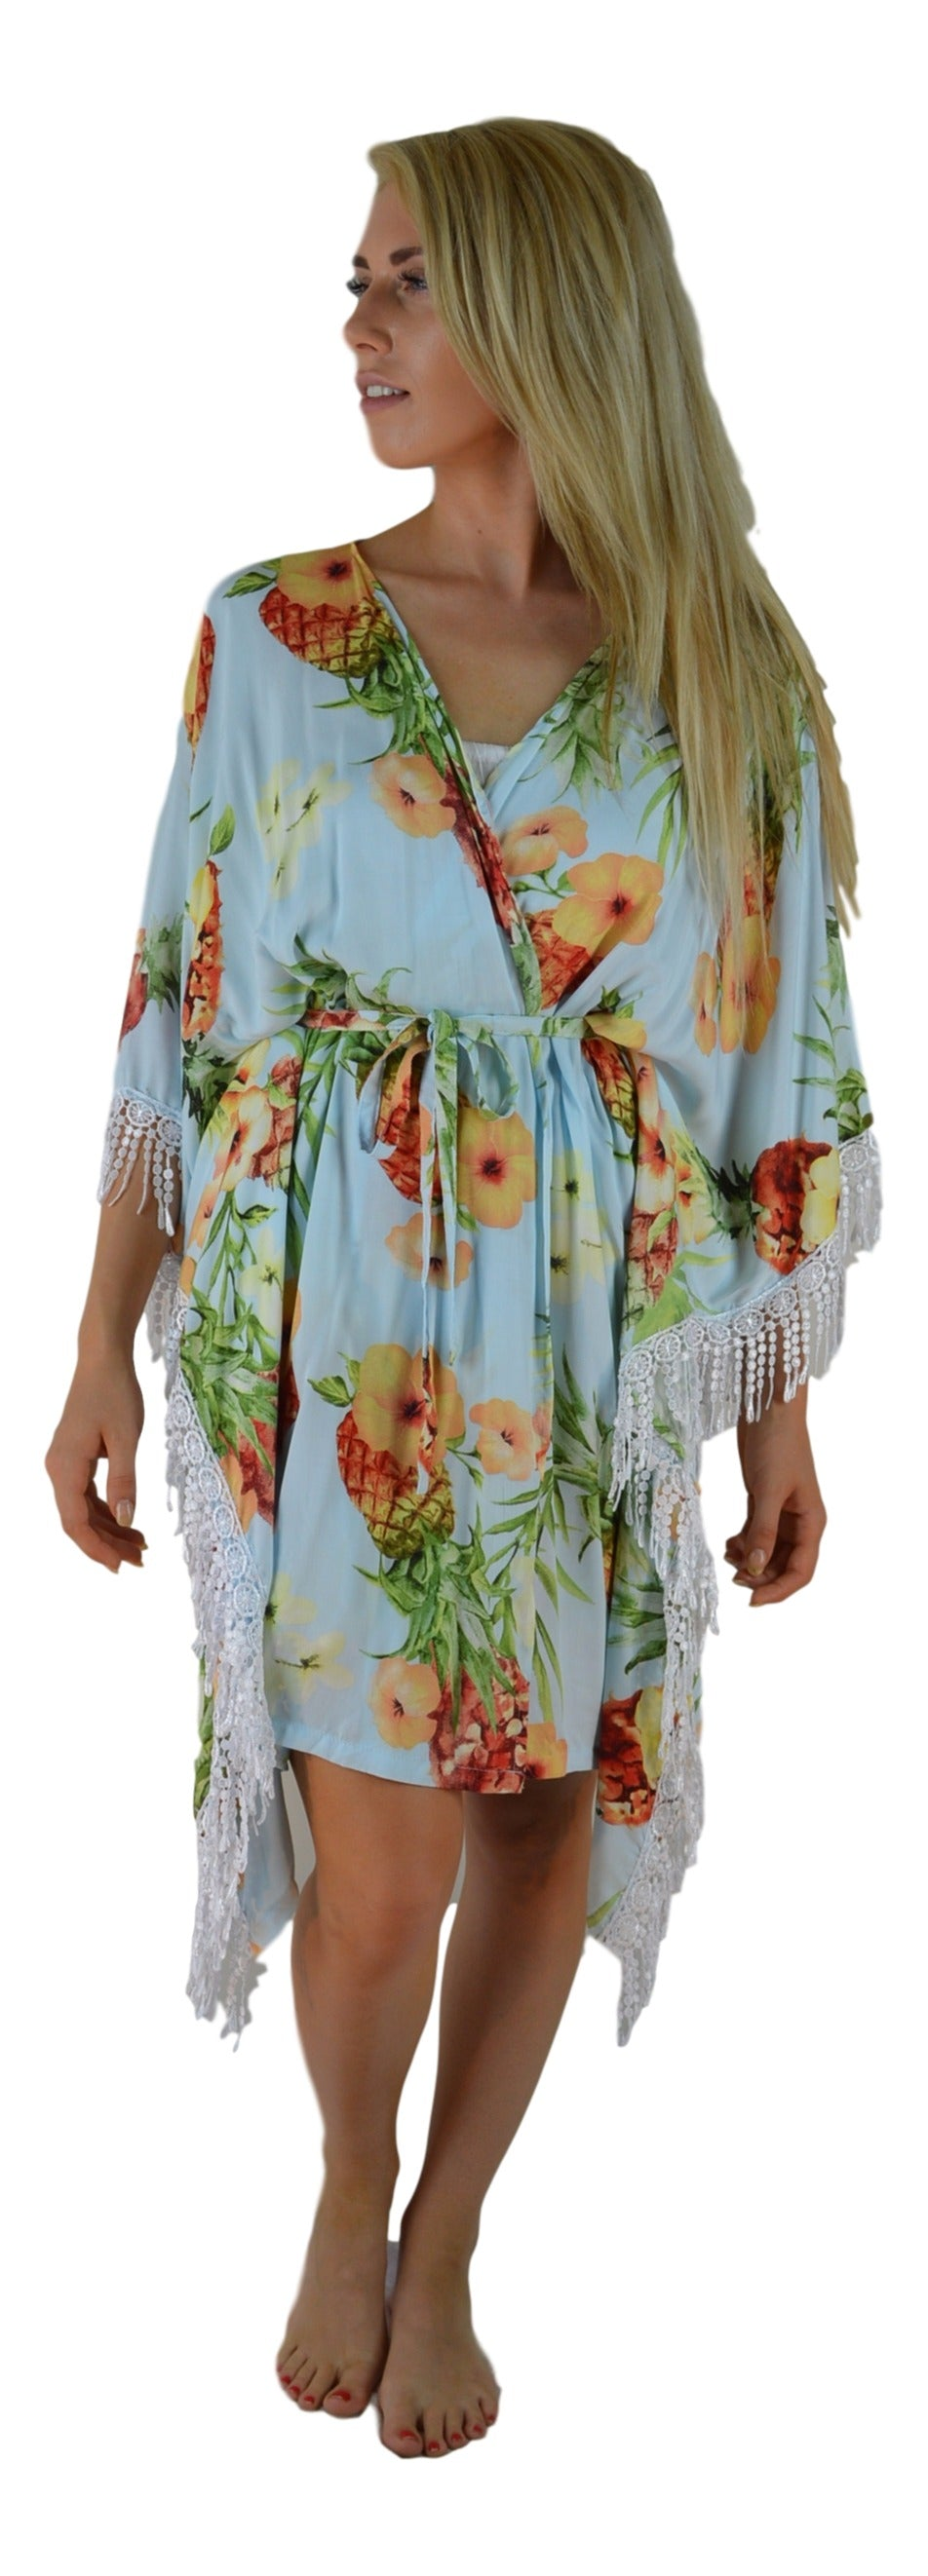 Secret Beach - Haiku Kimono - Long Lace - Hibiscus Pineapple - Light Blue